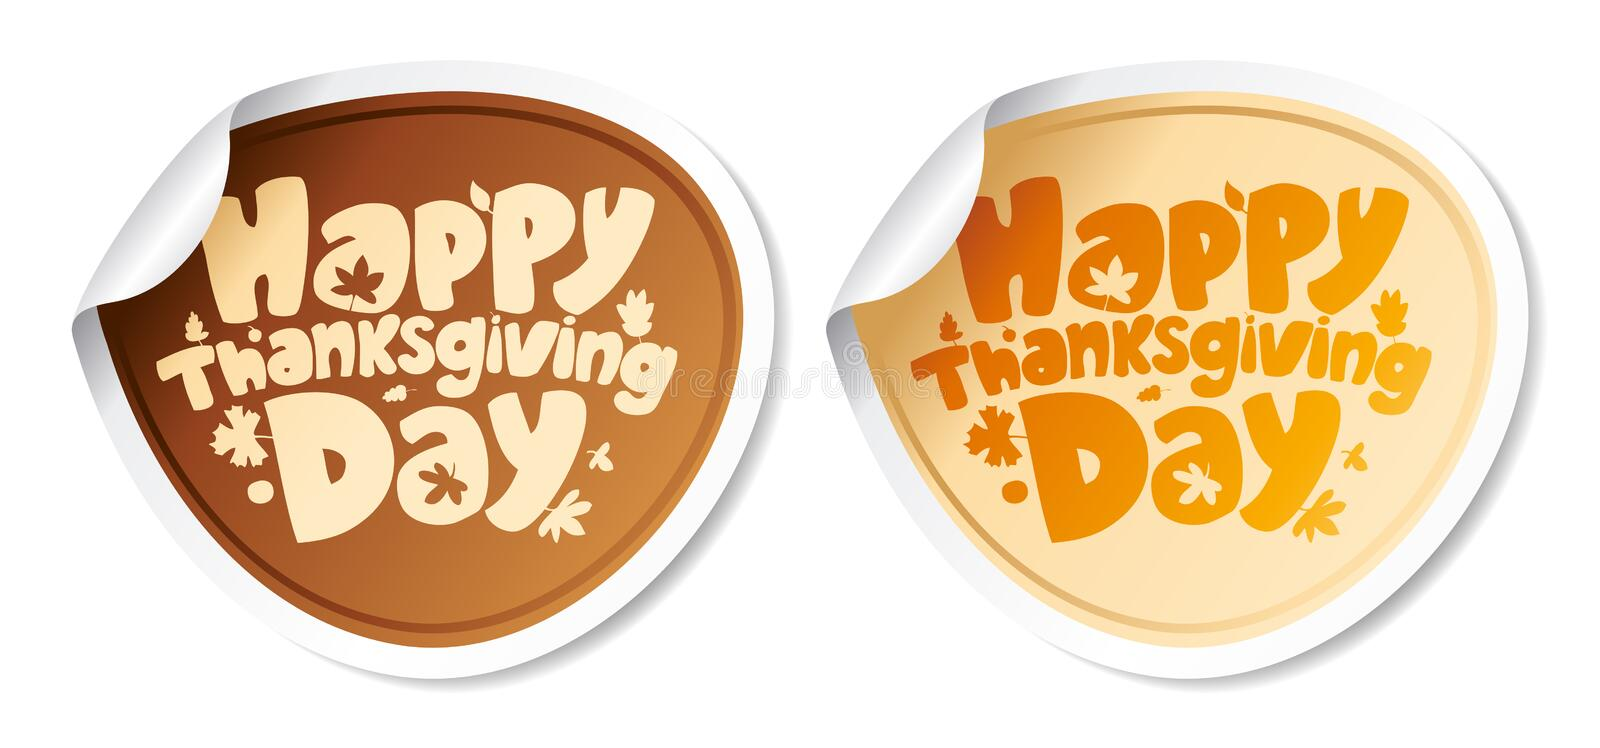 Thanksgiving Day stickers. royalty free illustration